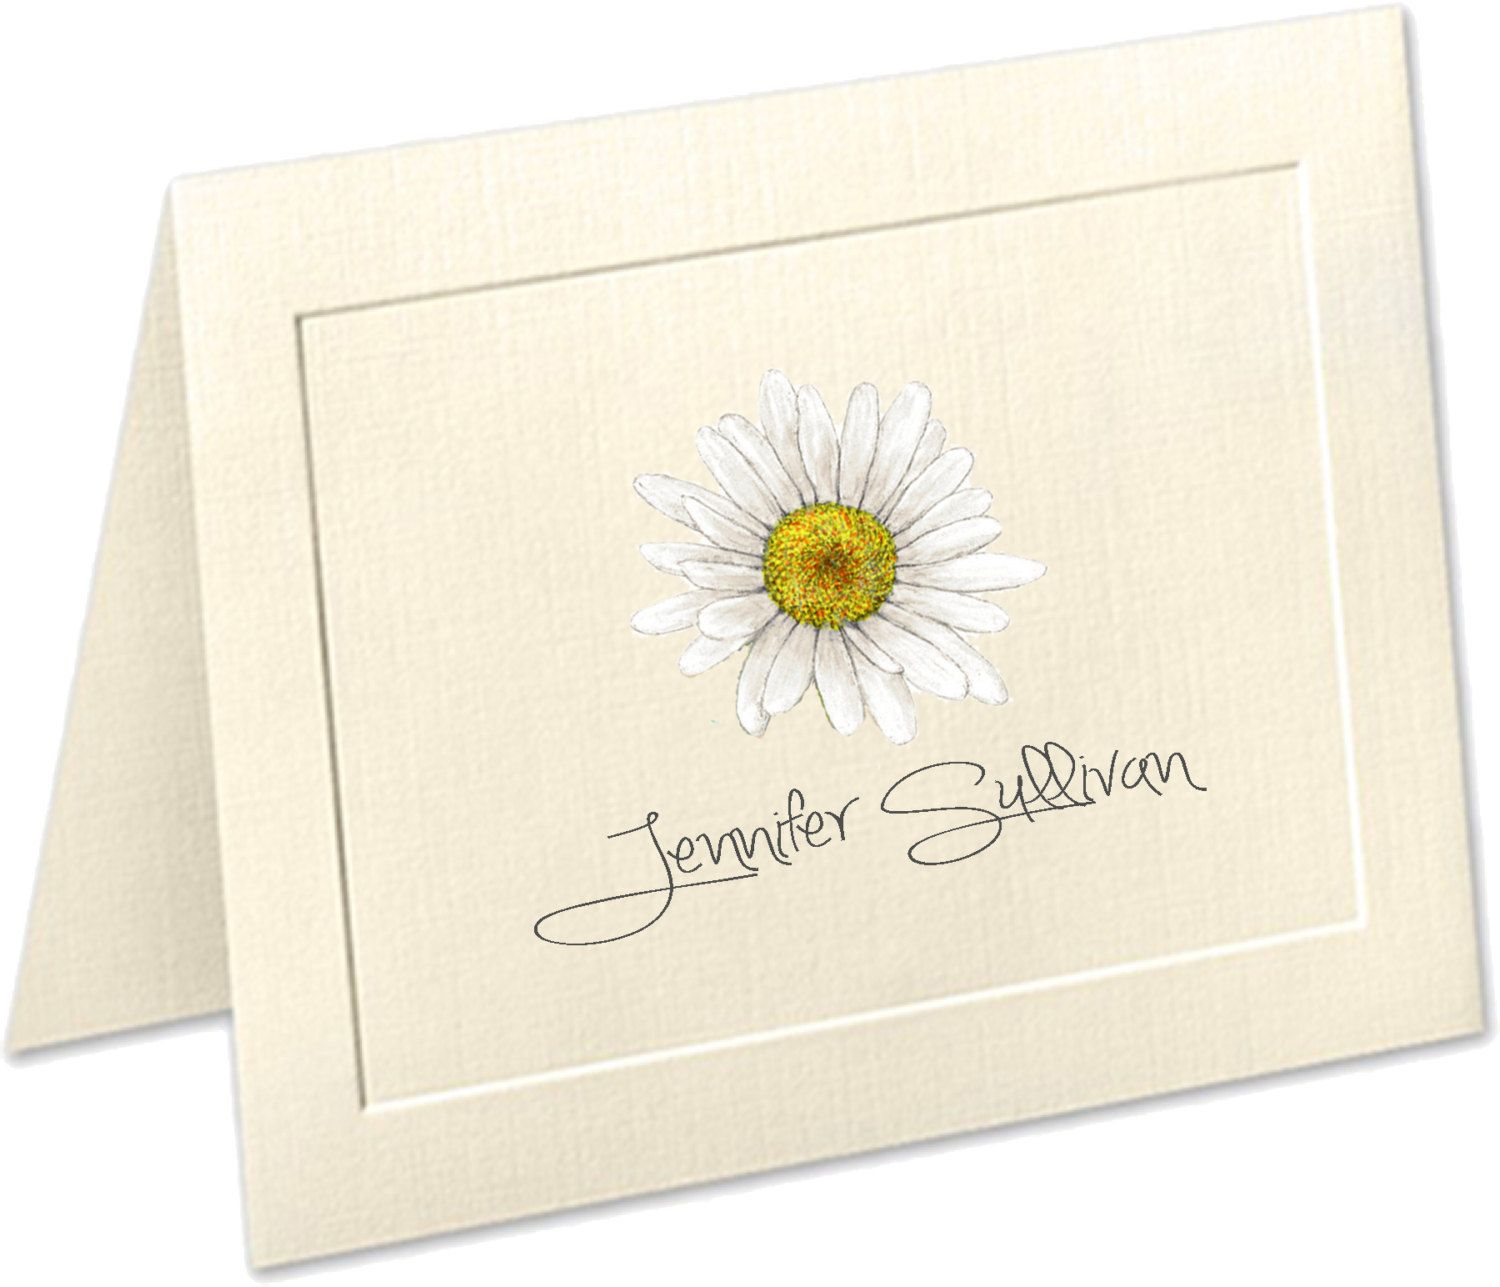 daisy embossed panel linen finish personalized folded note cards stationery birthday present present teacher gift thank you cards flower by - Custom Folded Note Cards